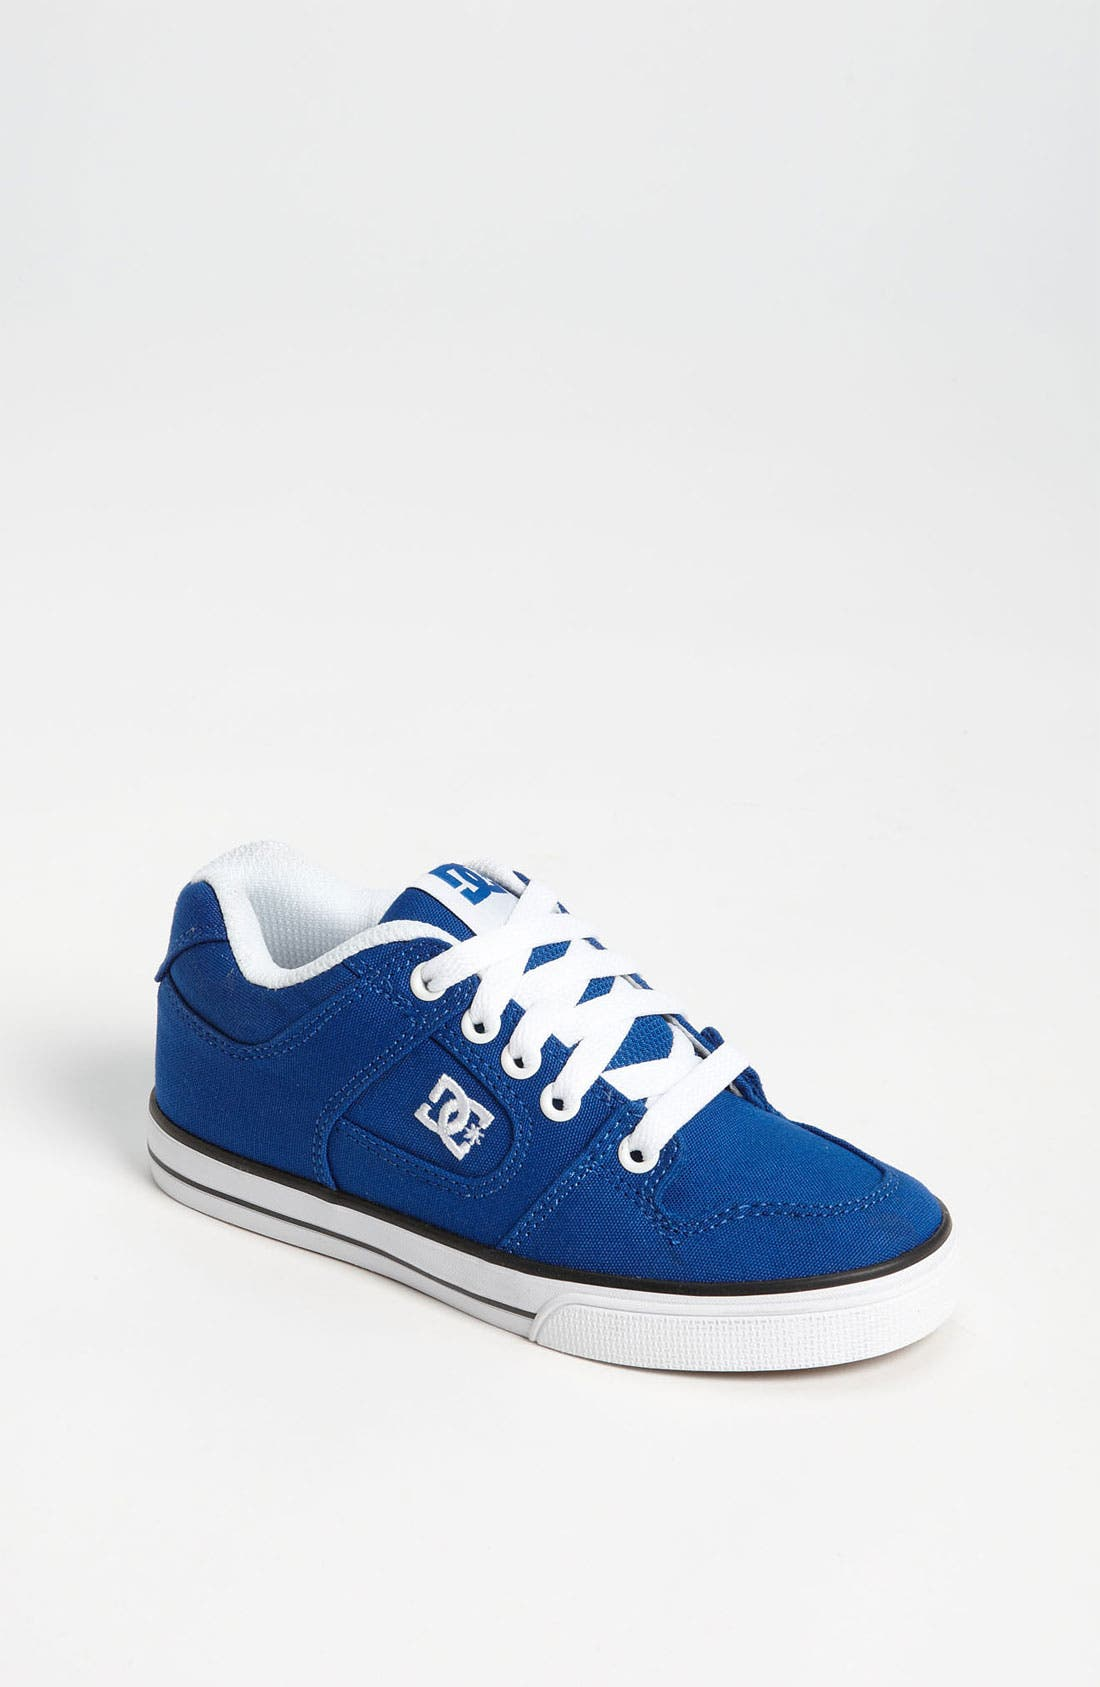 Alternate Image 1 Selected - DC Shoes 'Pure' Sneaker (Toddler, Little Kid & Big Kid)